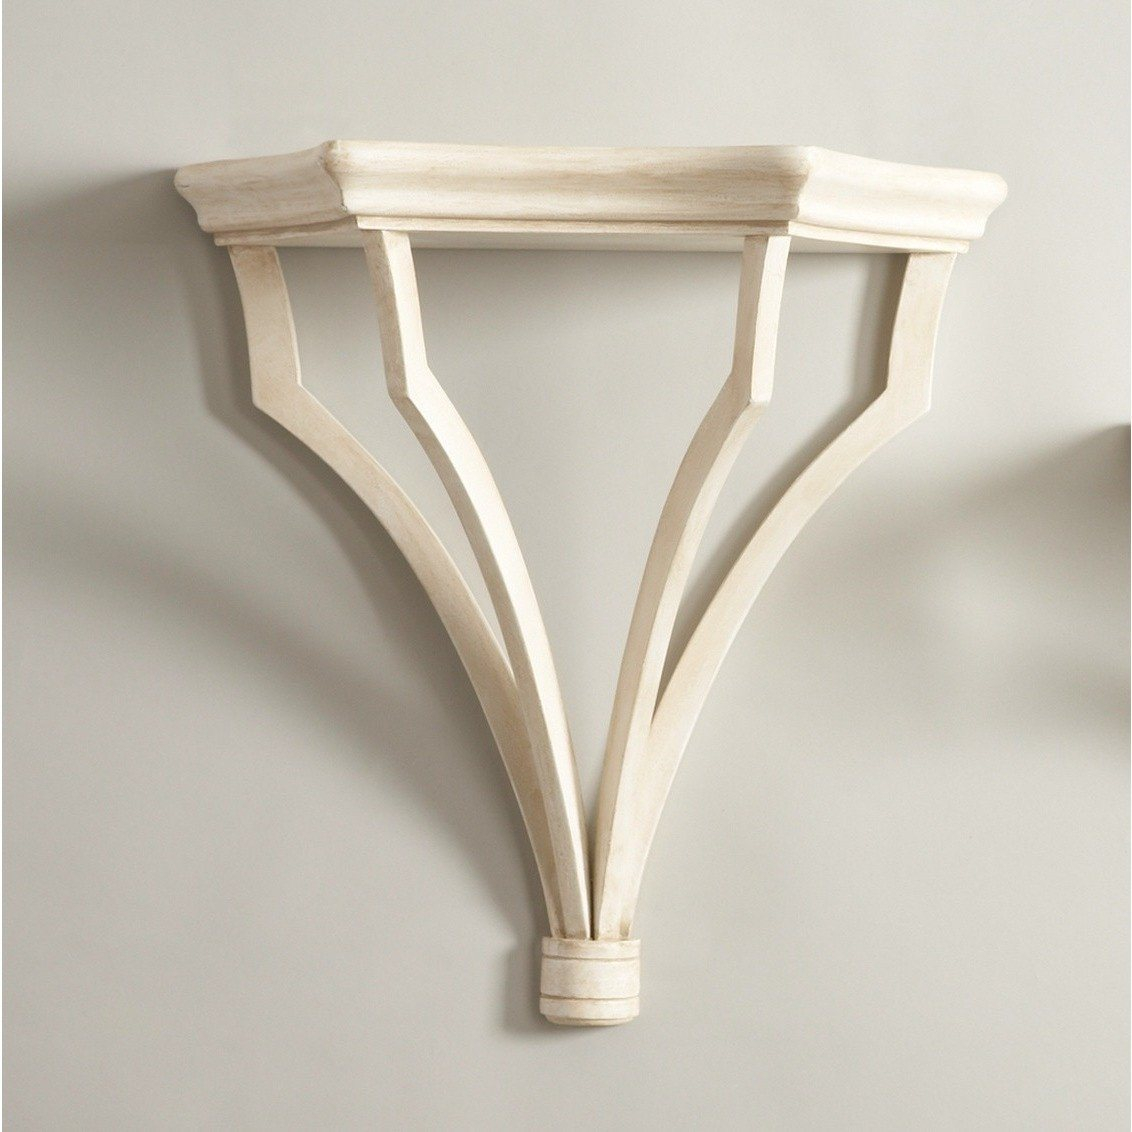 Chelsea House Large Sheraton Bracket 380992 - LOVECUP